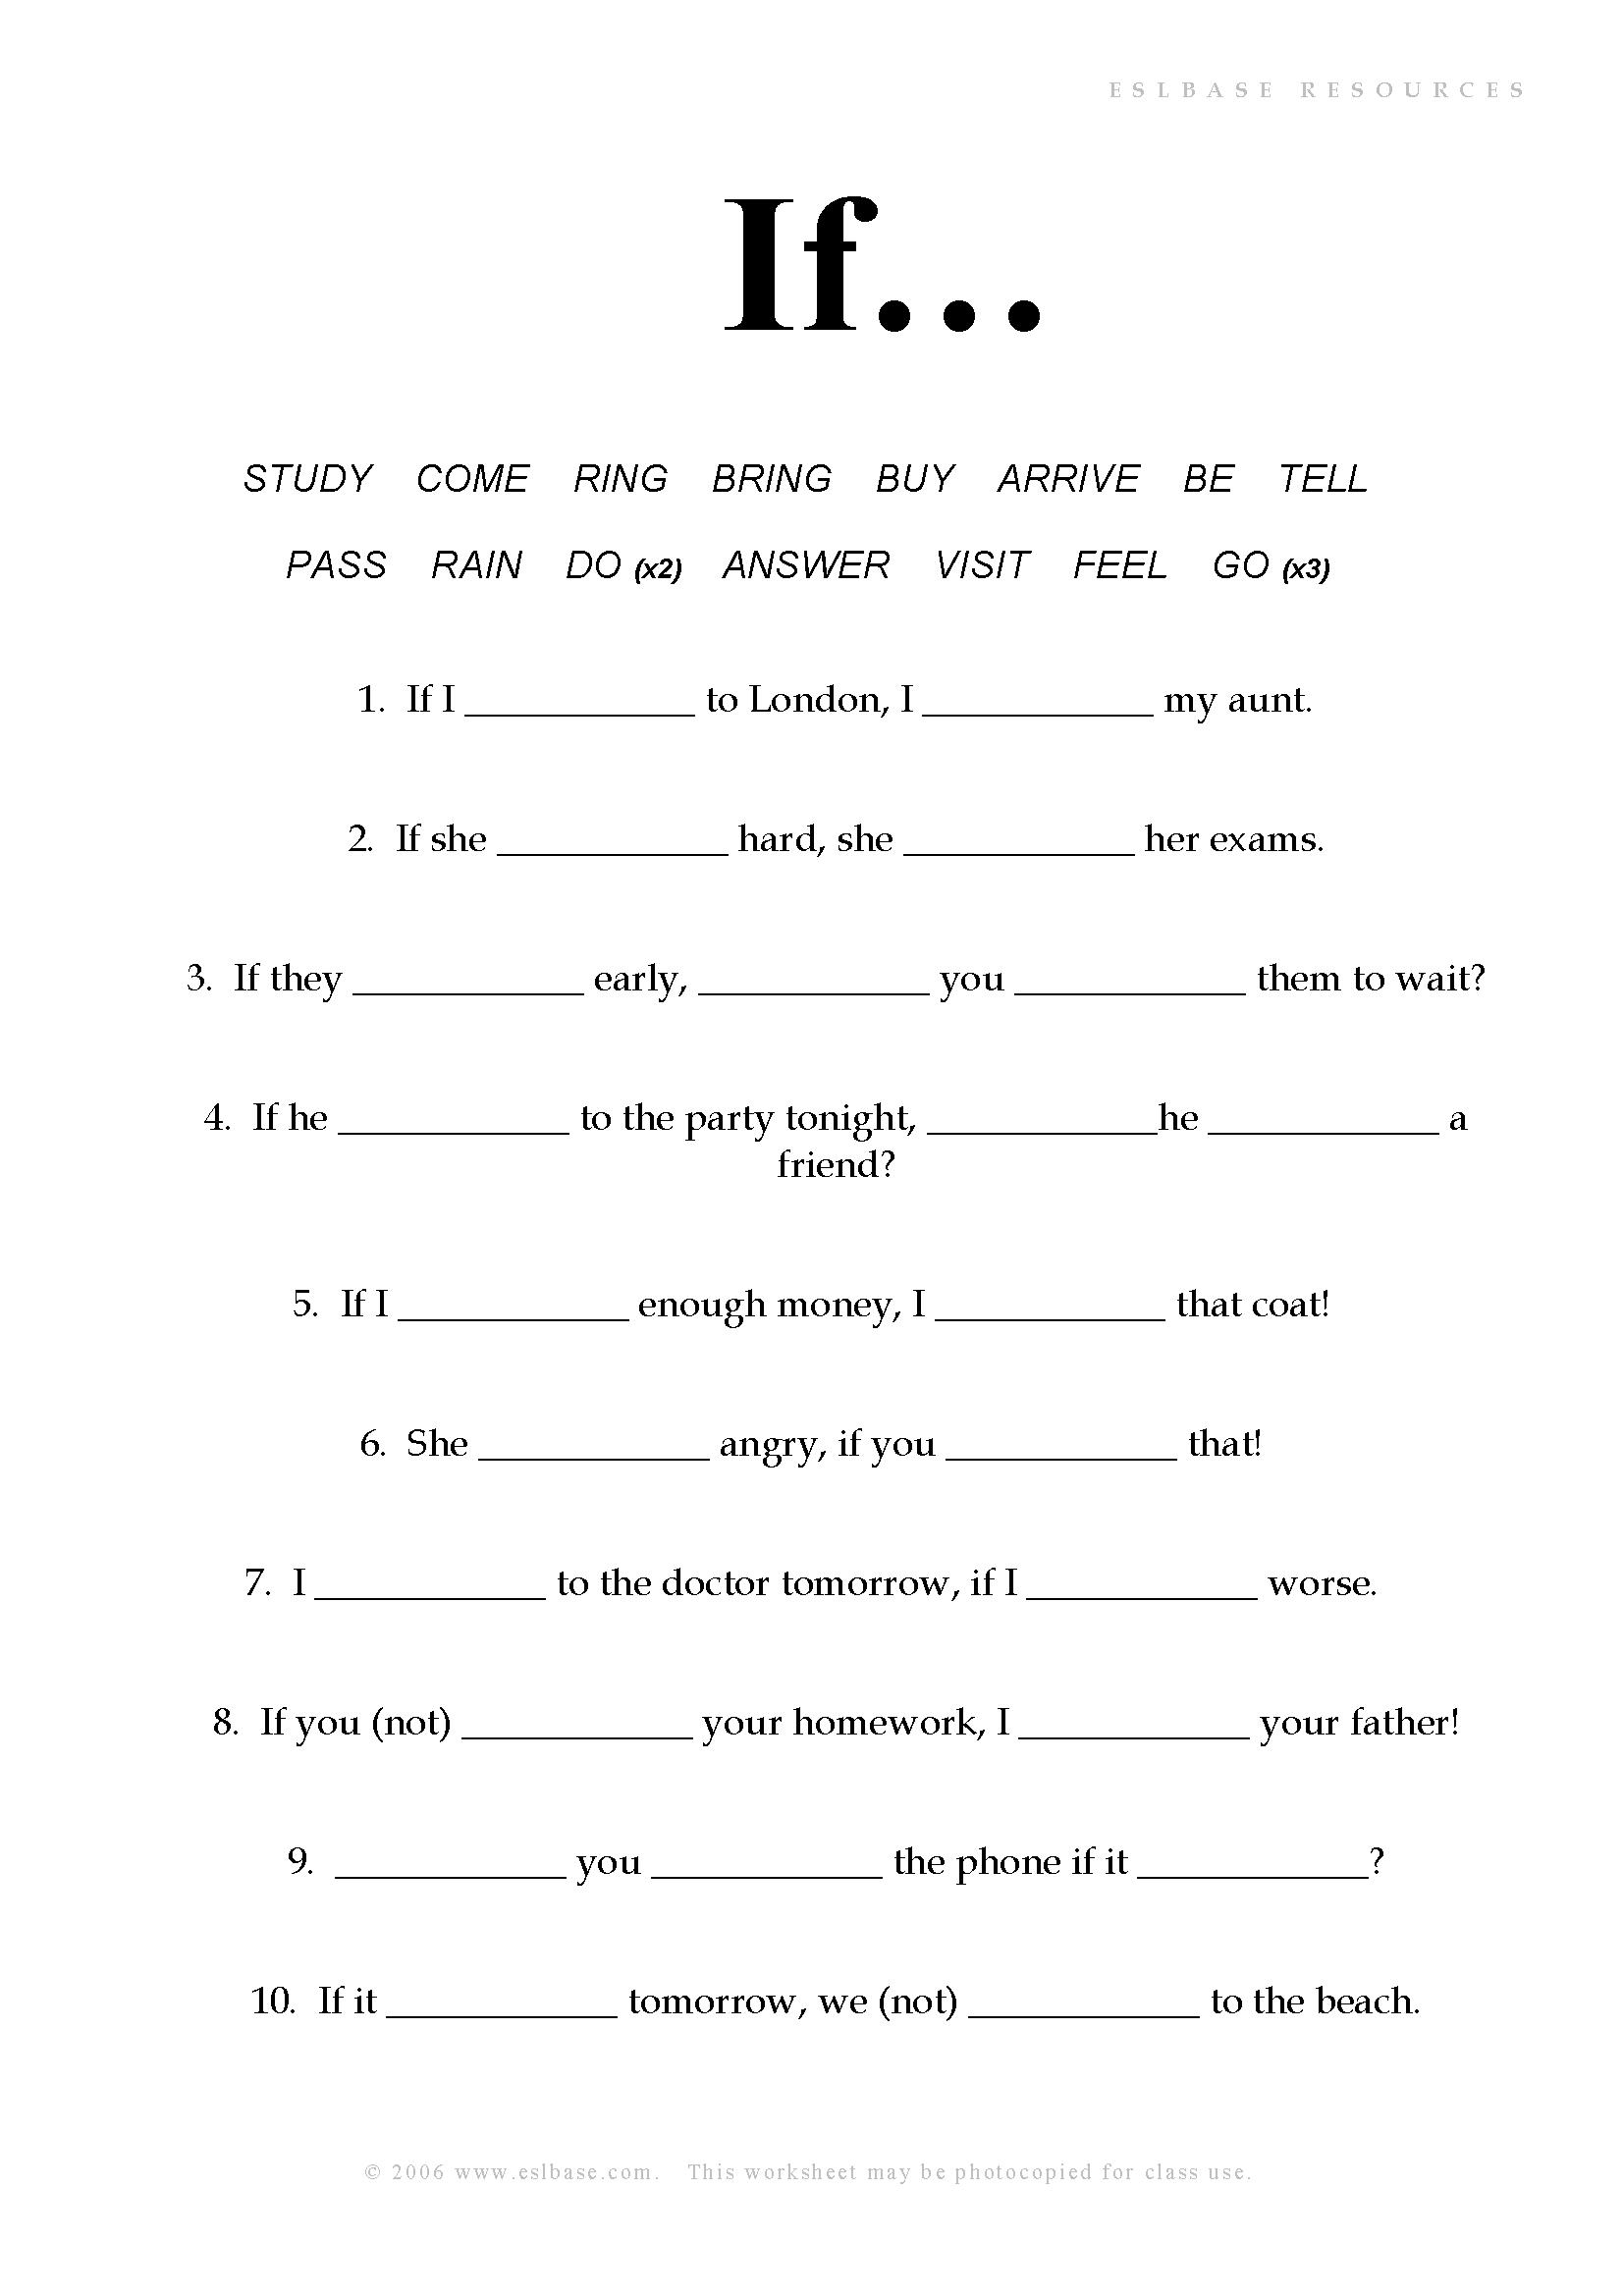 Worksheet to practise first conditional